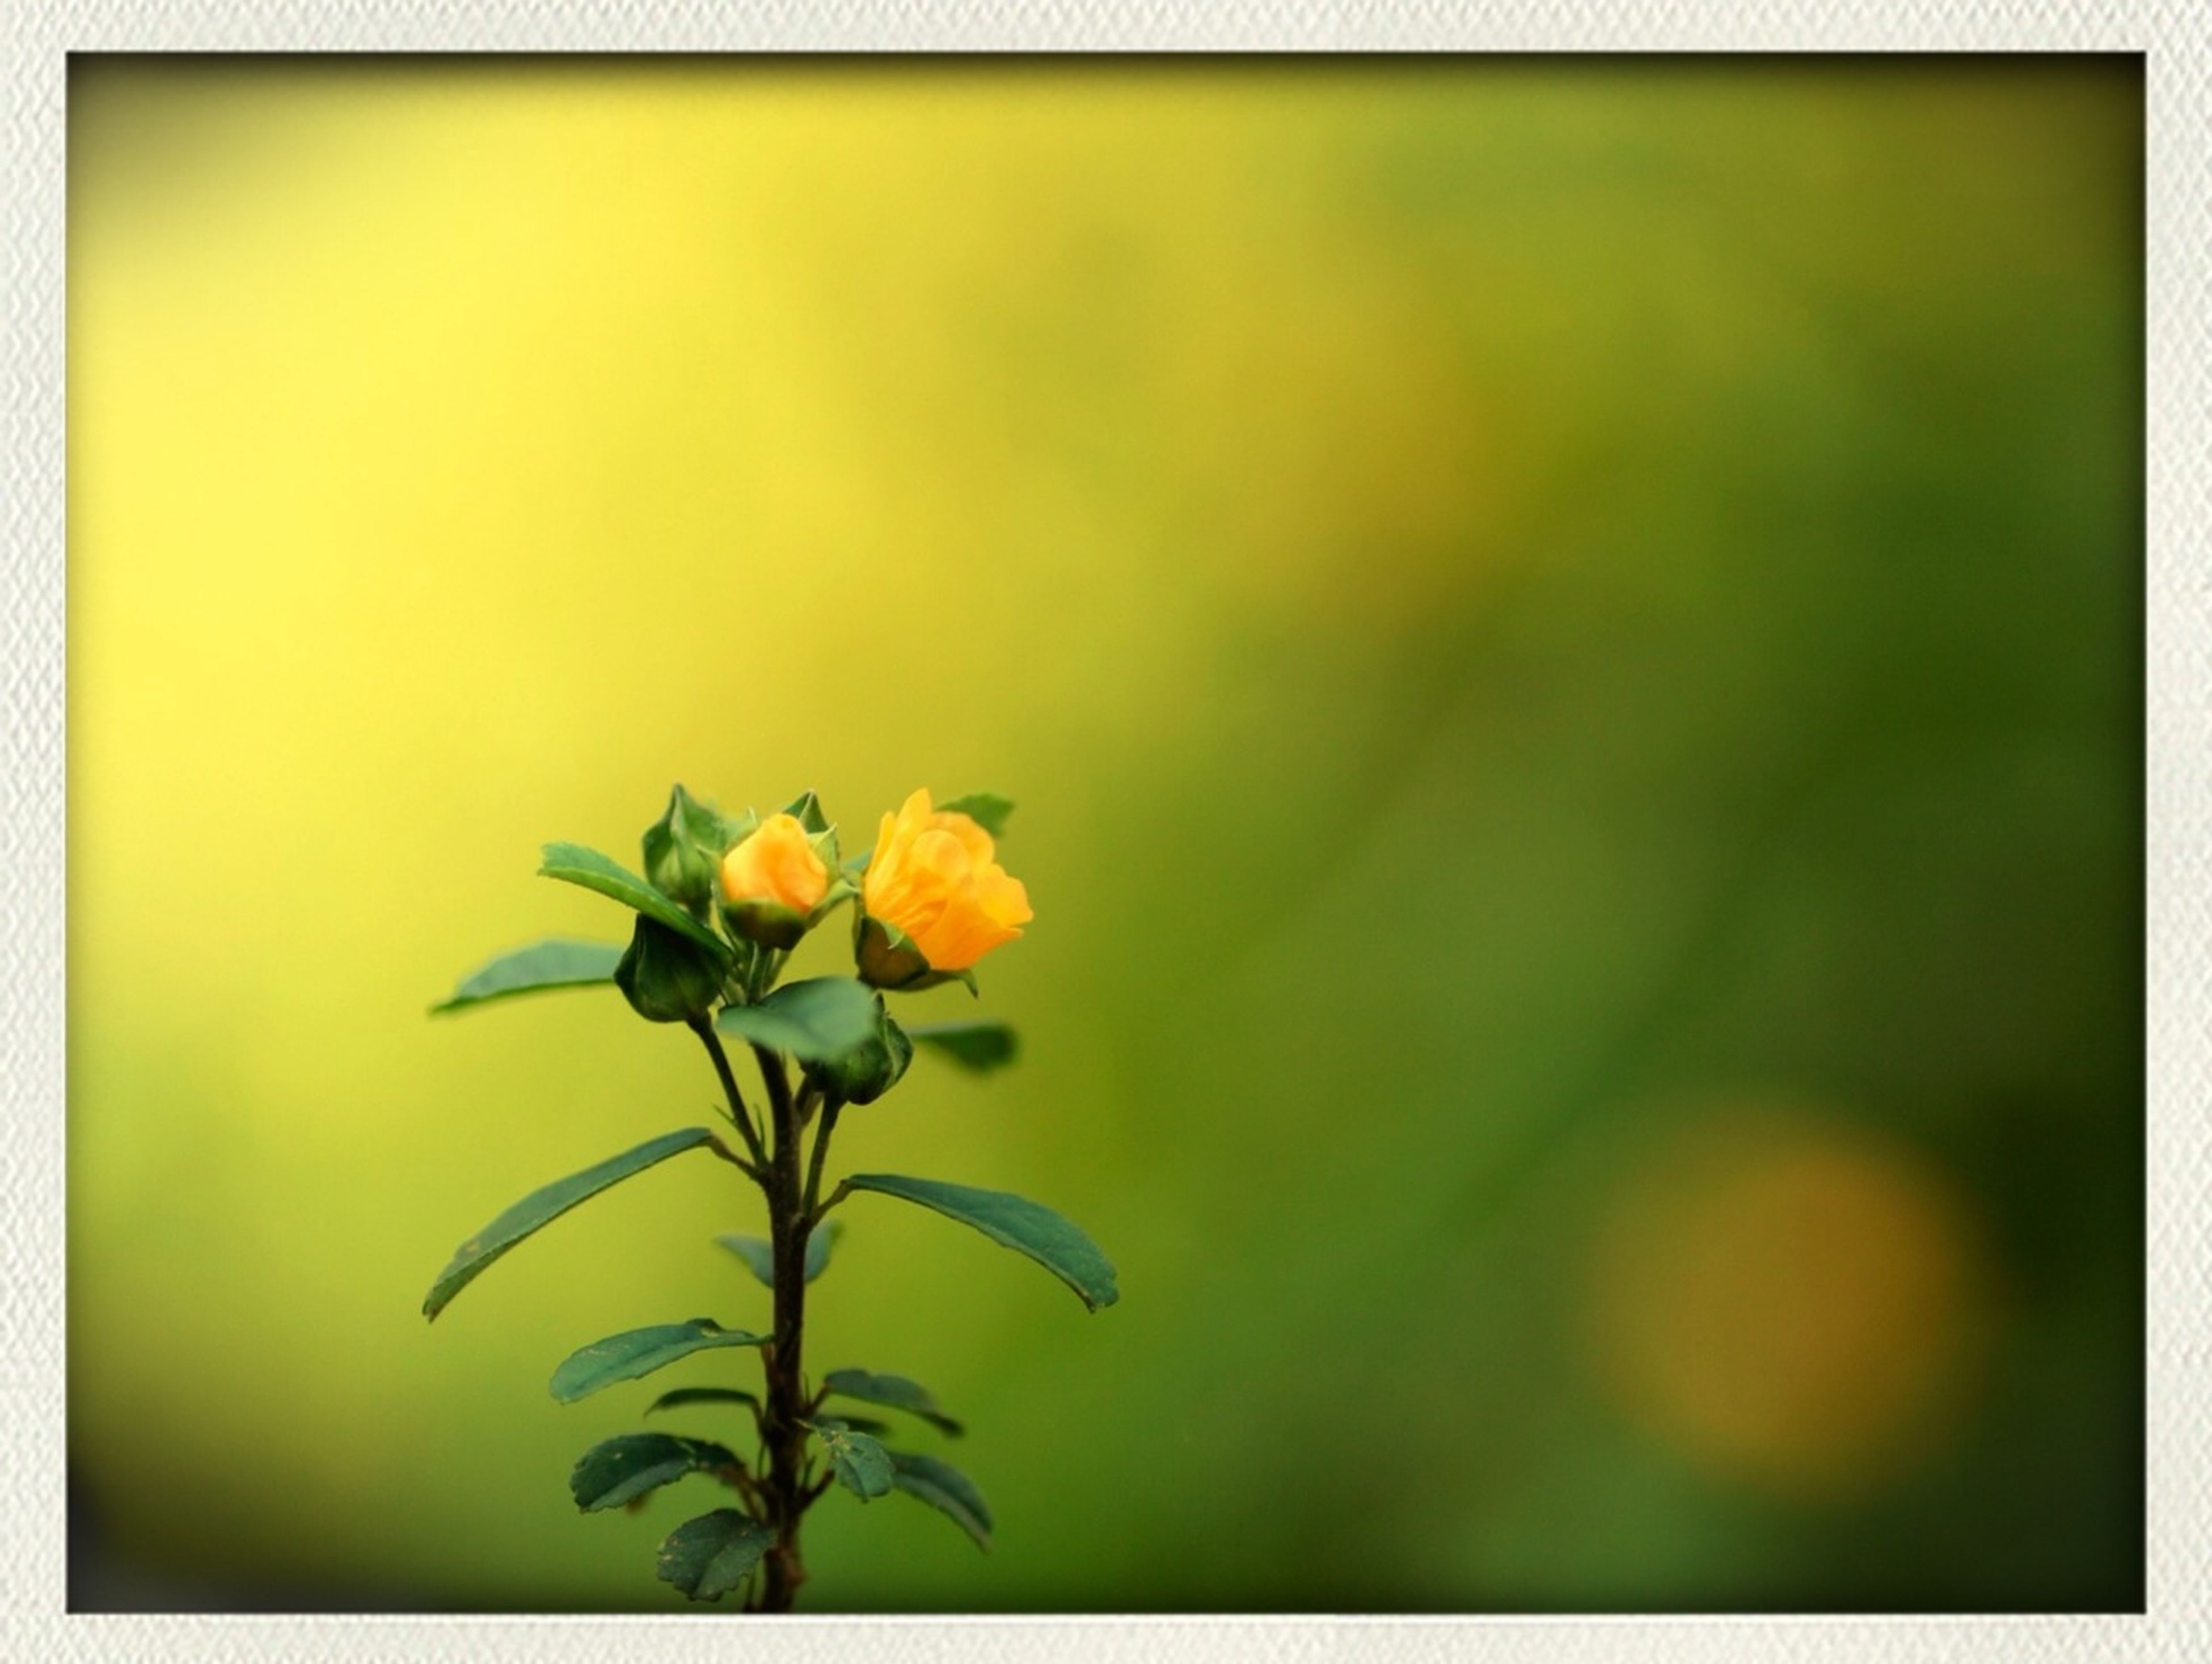 flower, transfer print, freshness, petal, fragility, auto post production filter, growth, flower head, yellow, beauty in nature, nature, plant, blooming, focus on foreground, close-up, stem, in bloom, bud, blossom, leaf